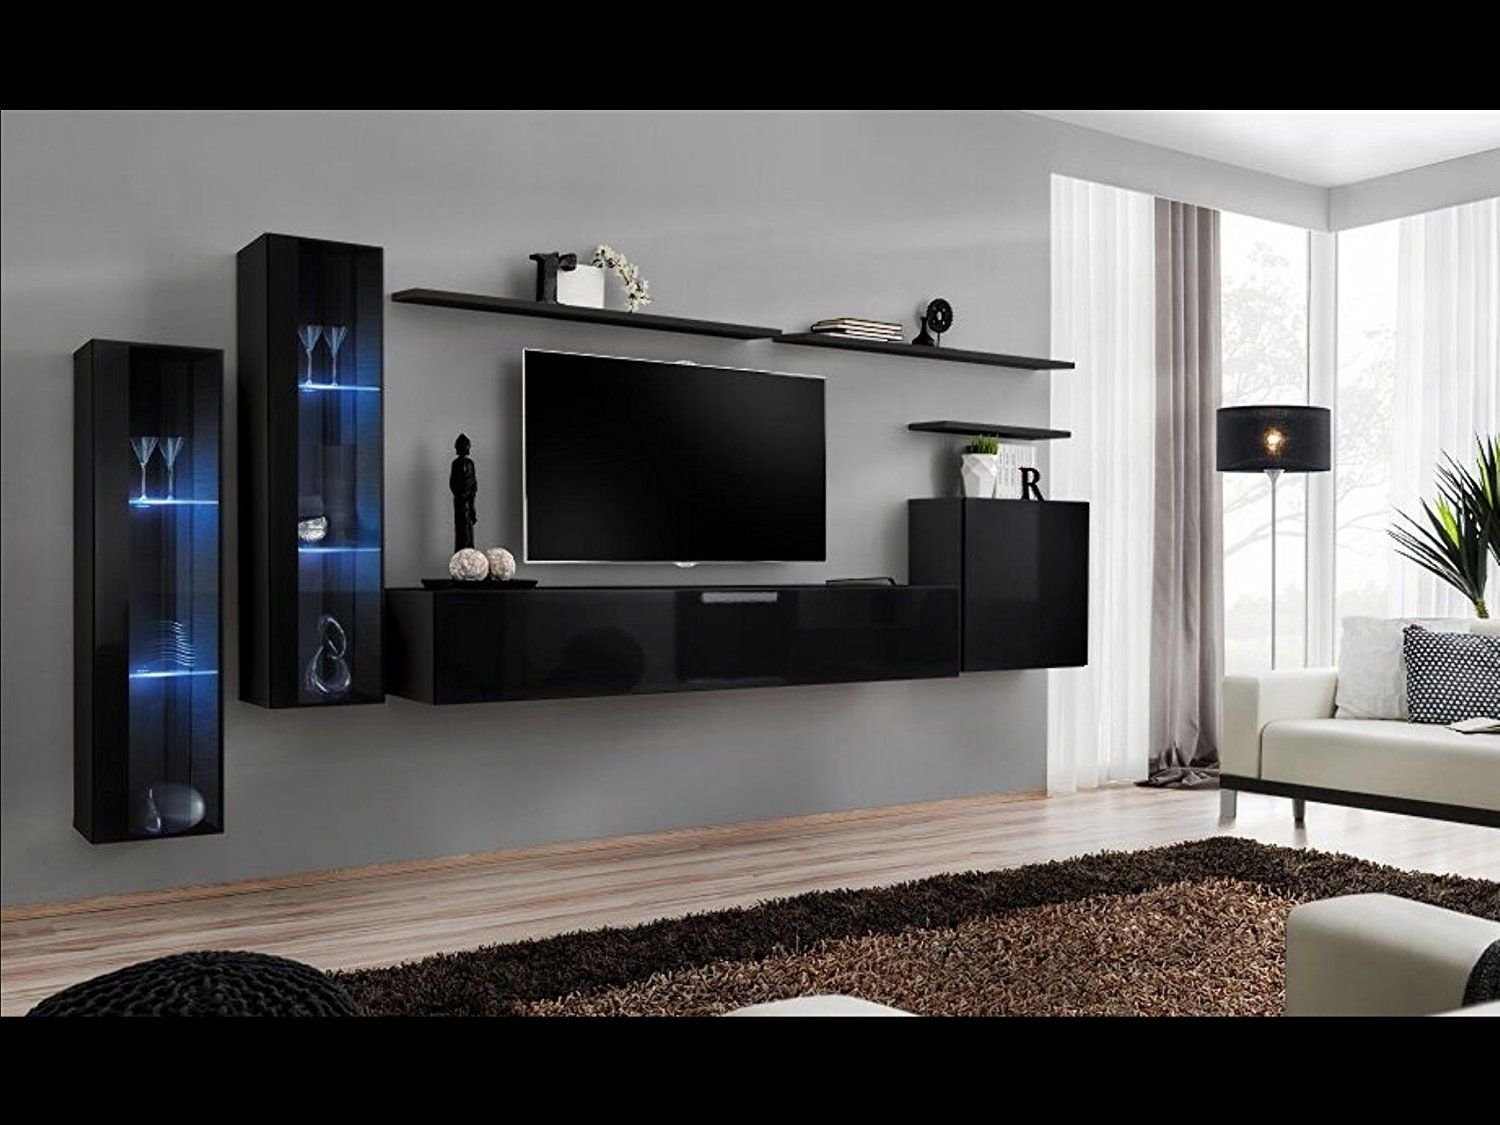 Shift Xi Seattle Collection High Gloss Living Room Furniture Floating Tv Cabinet